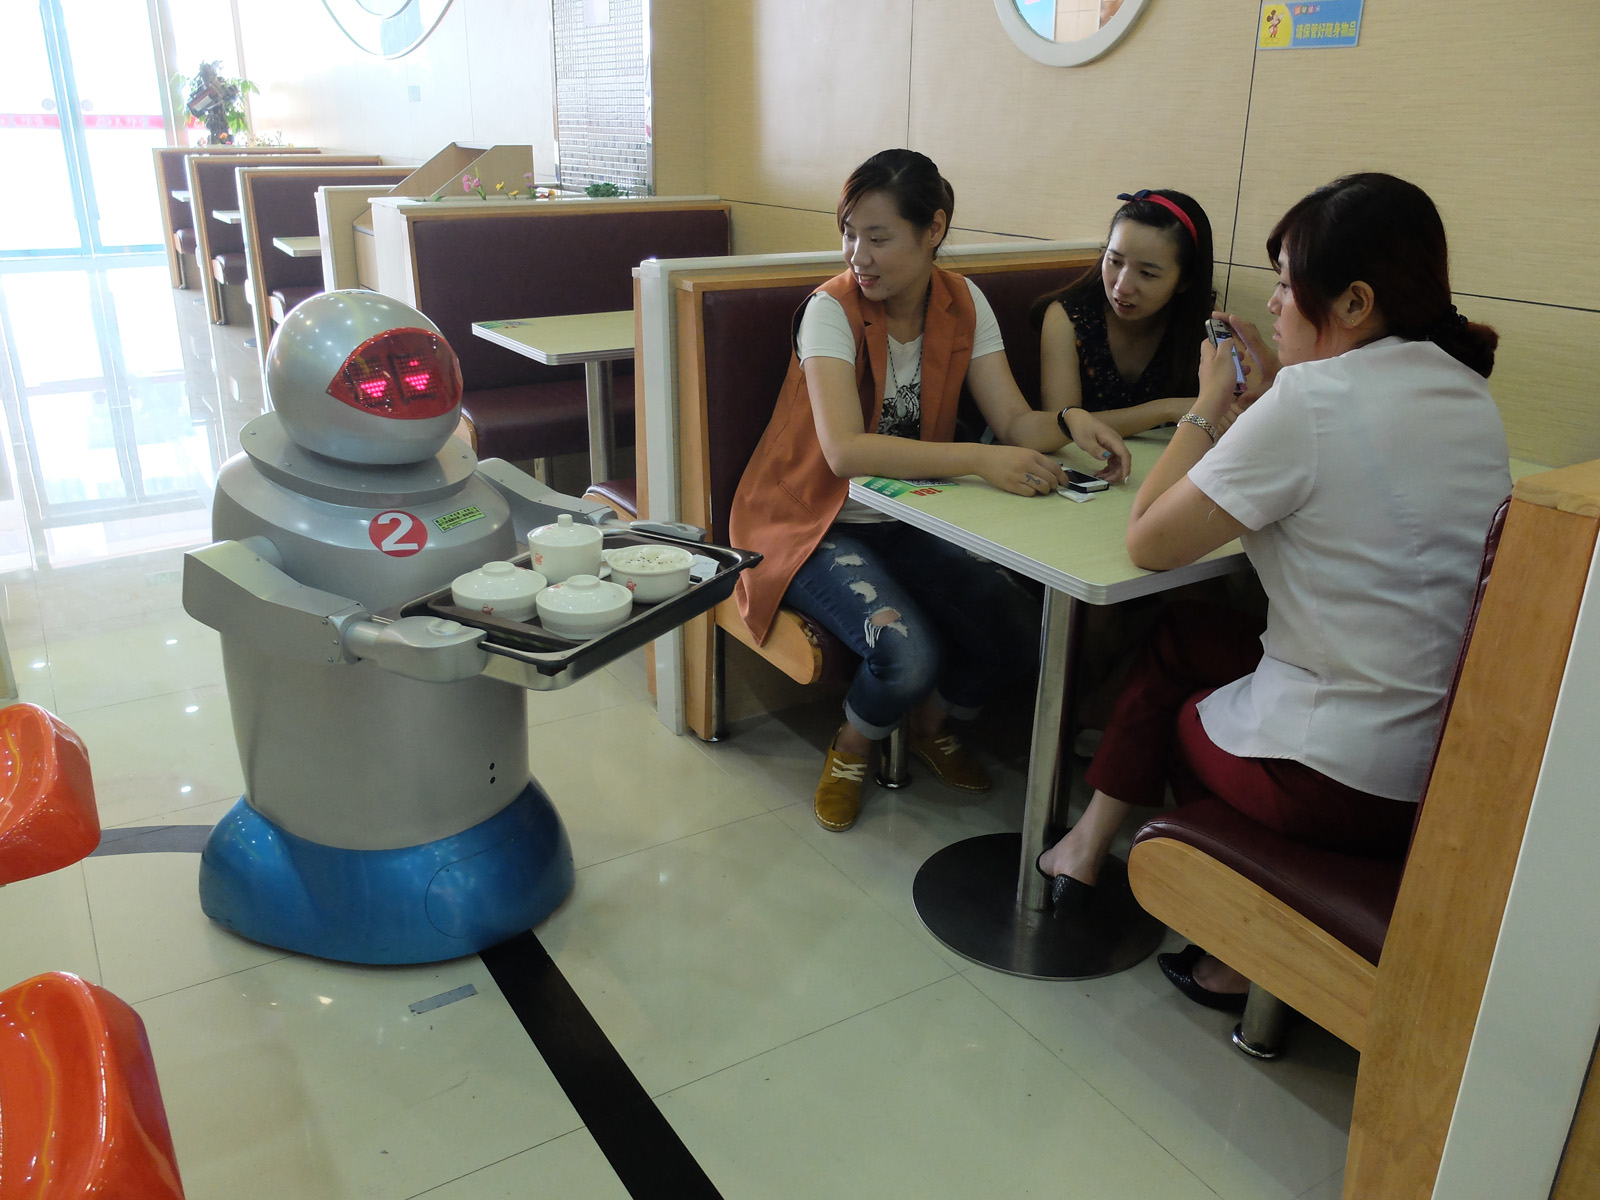 Girls at table with robot